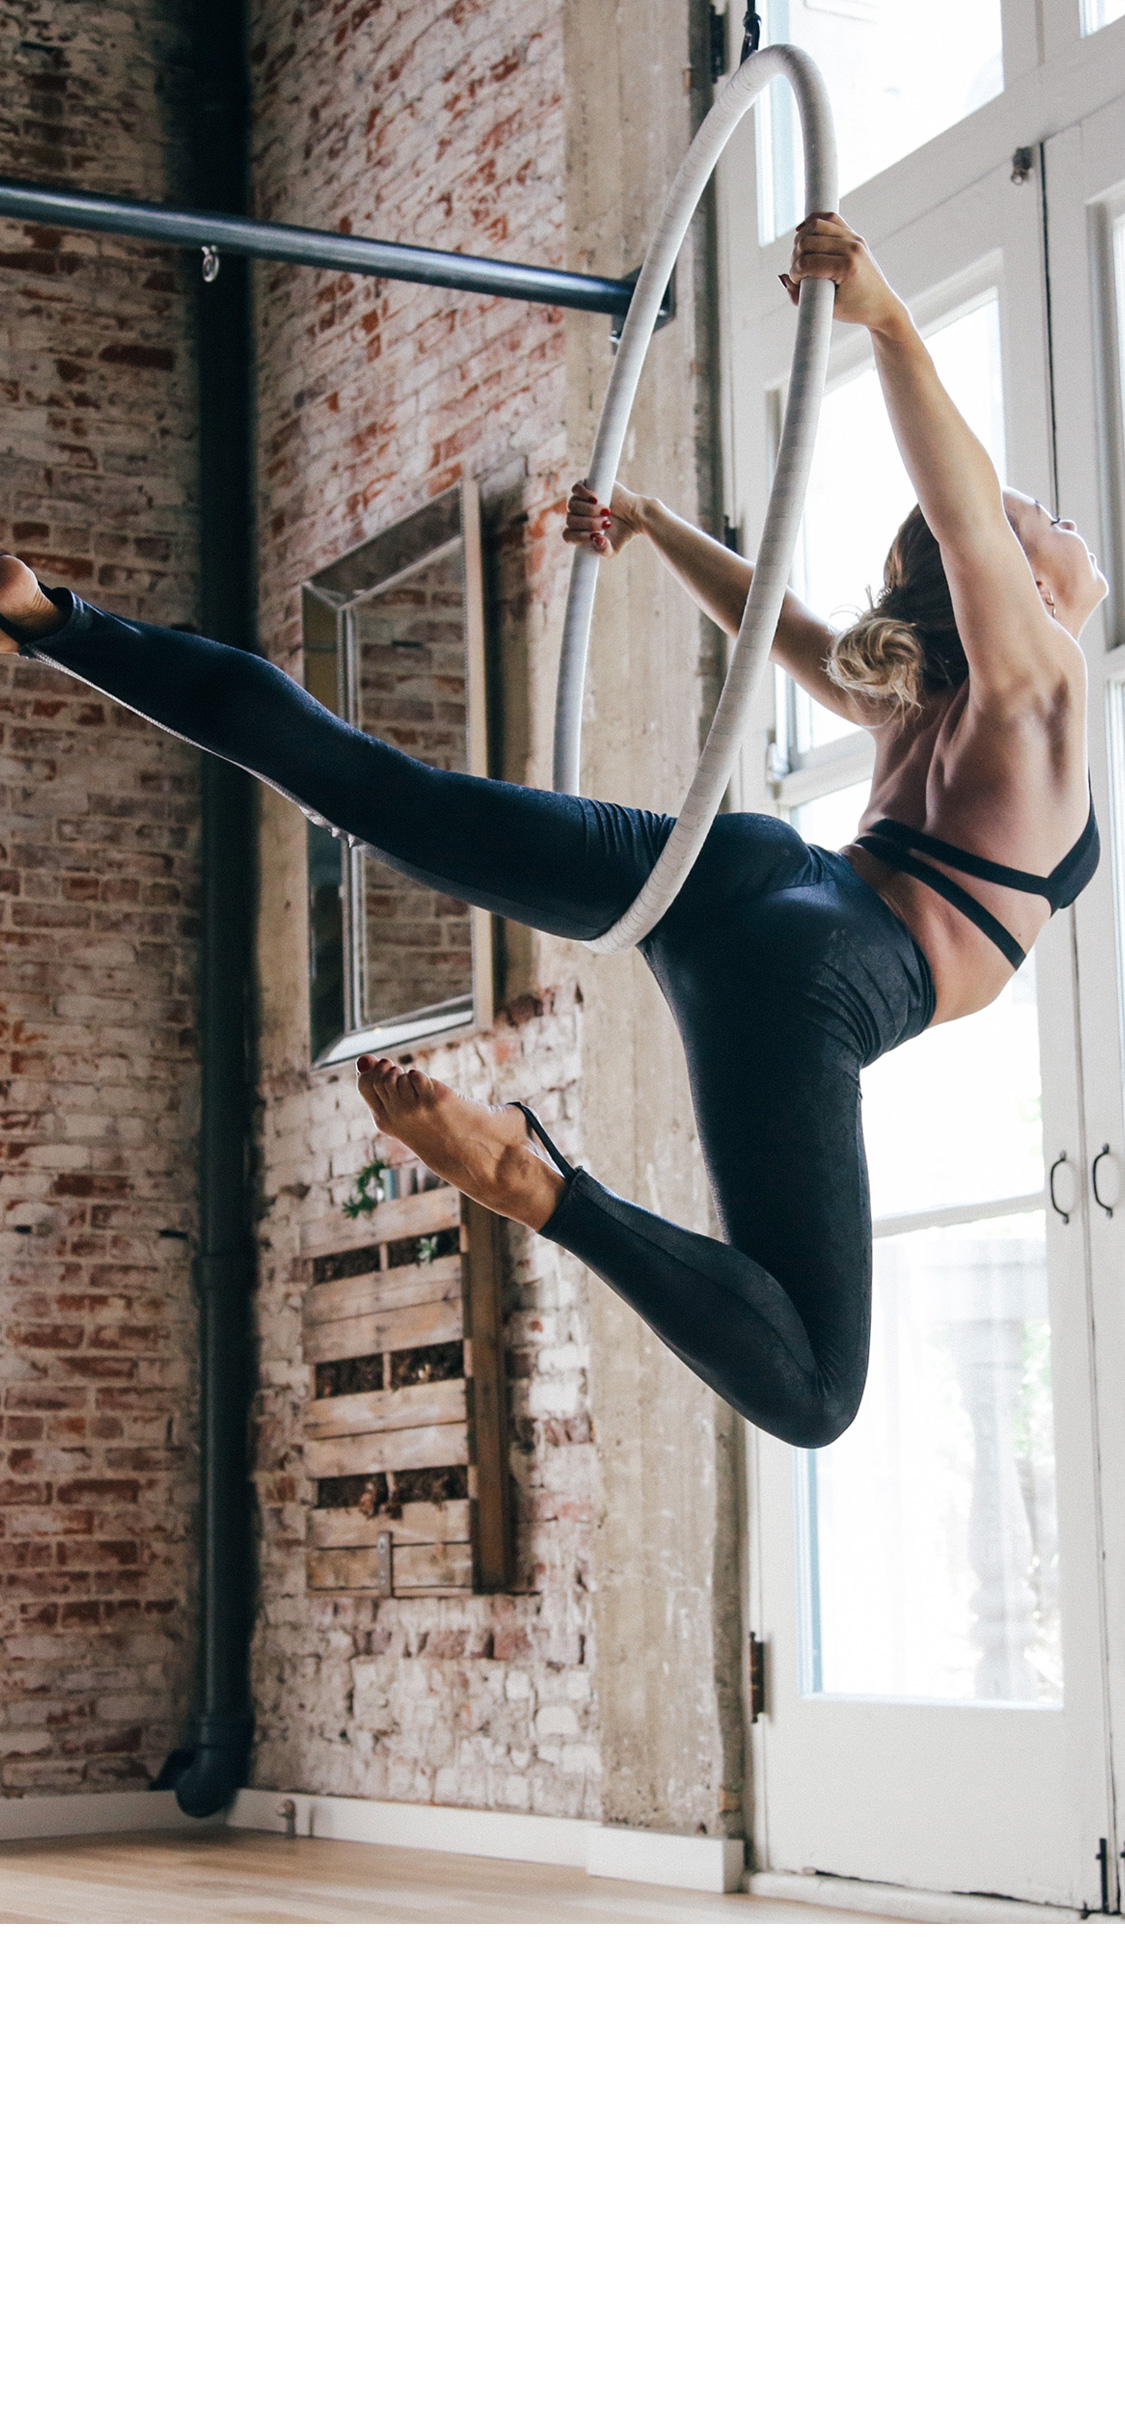 D&A Flying Yoga/Pole Fitness/Bungee Fitness - Welcome to D ...